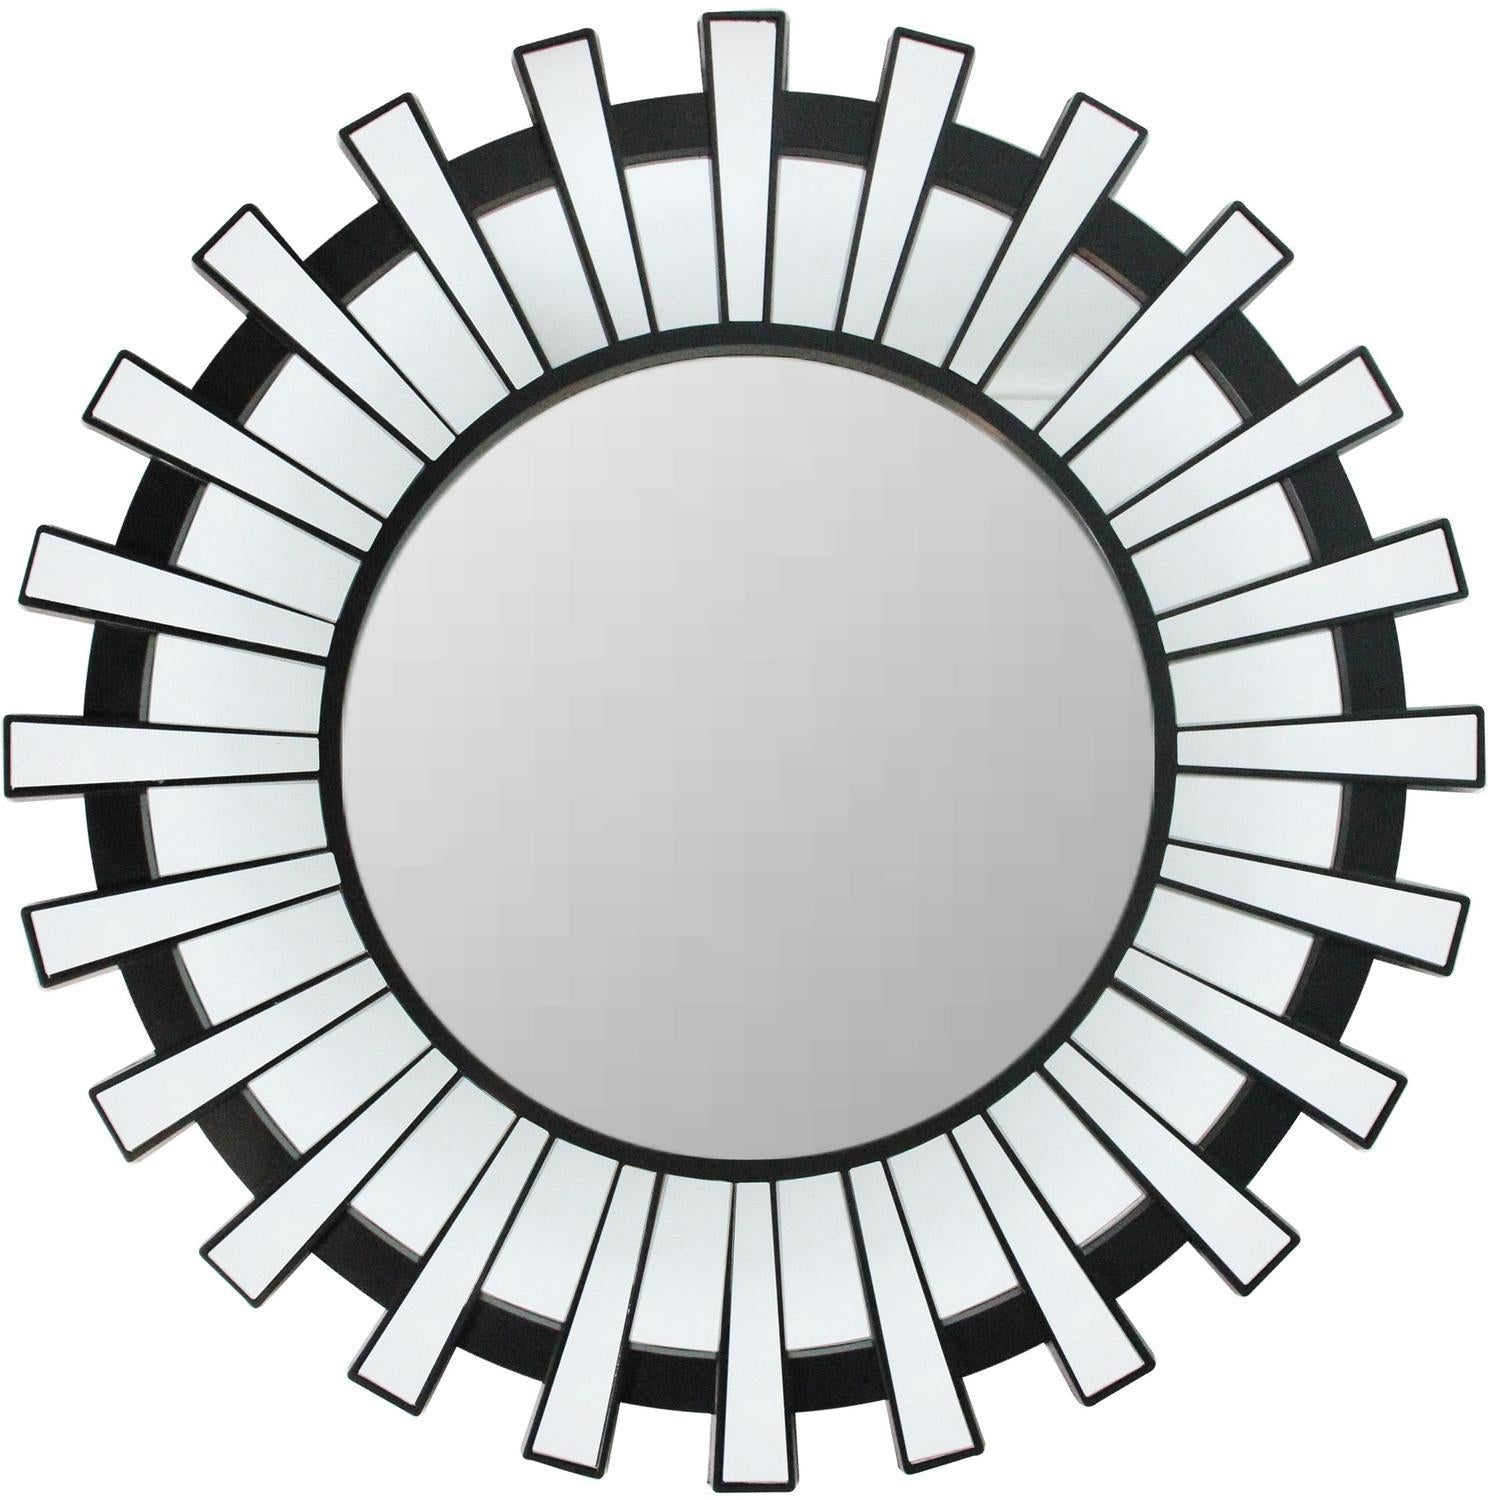 Photo of mirror without background setting. This beautifully crafted mirror will add a touch of modern elegance to any room in your home Features a round black frame with mini mirrored columns inspired by a shimmering sunburst ! Can be hung vertically or horizontally Includes hanging hardware.